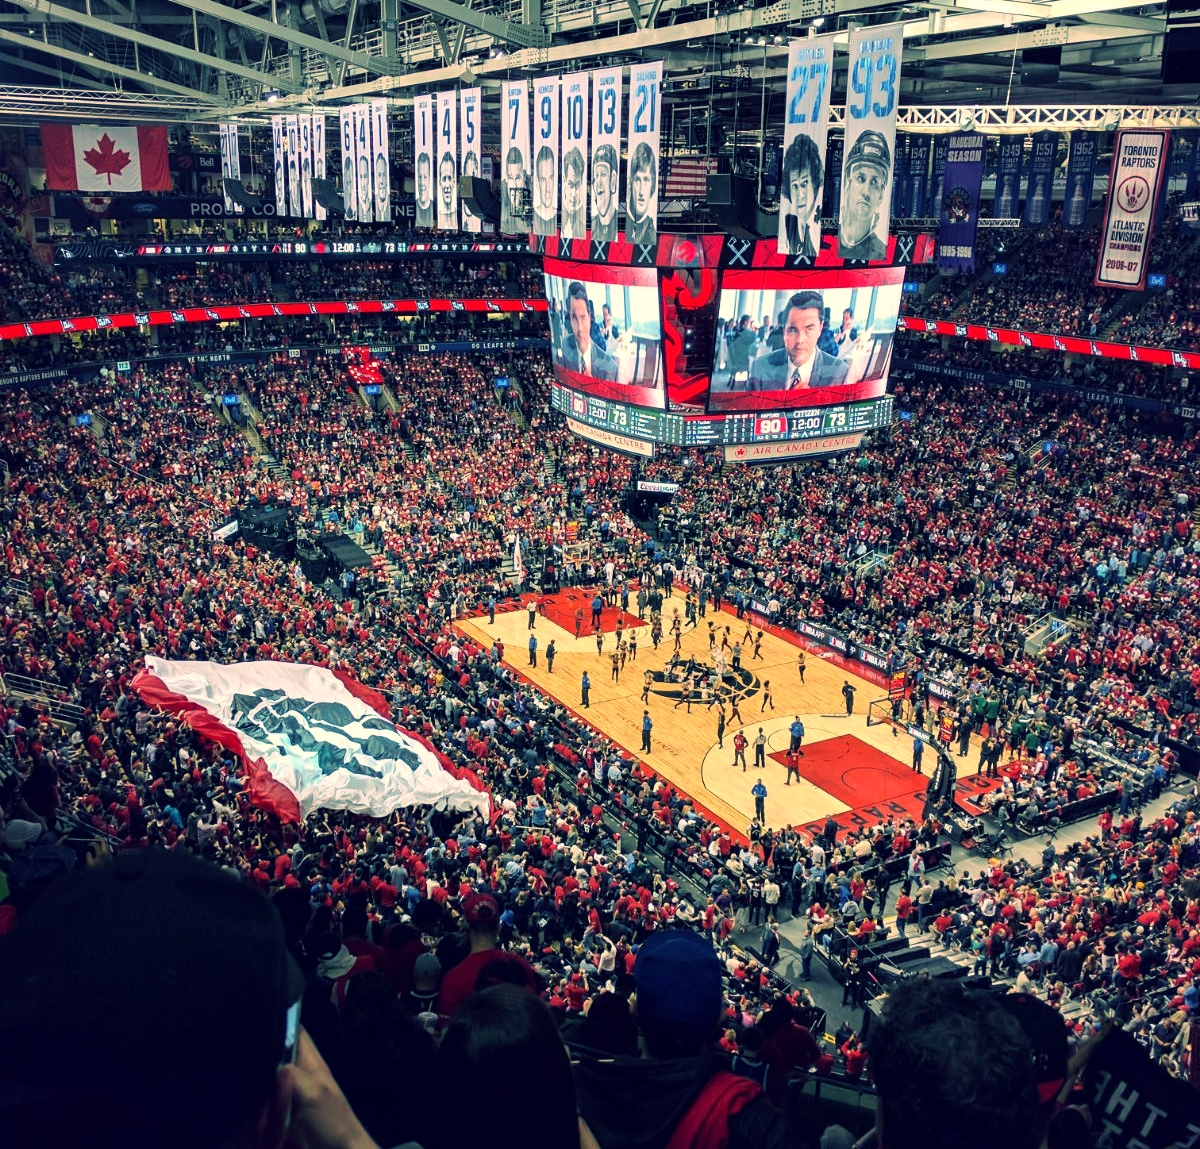 IS THIS THE LAST WE SEE OF THIS TORONTO RAPTORS TEAM? DECISIONS MADE IN THIS OFF-SEASON WILL DICTATE THE KIND OF TEAM WE WILL SEE COME OCTOBER.